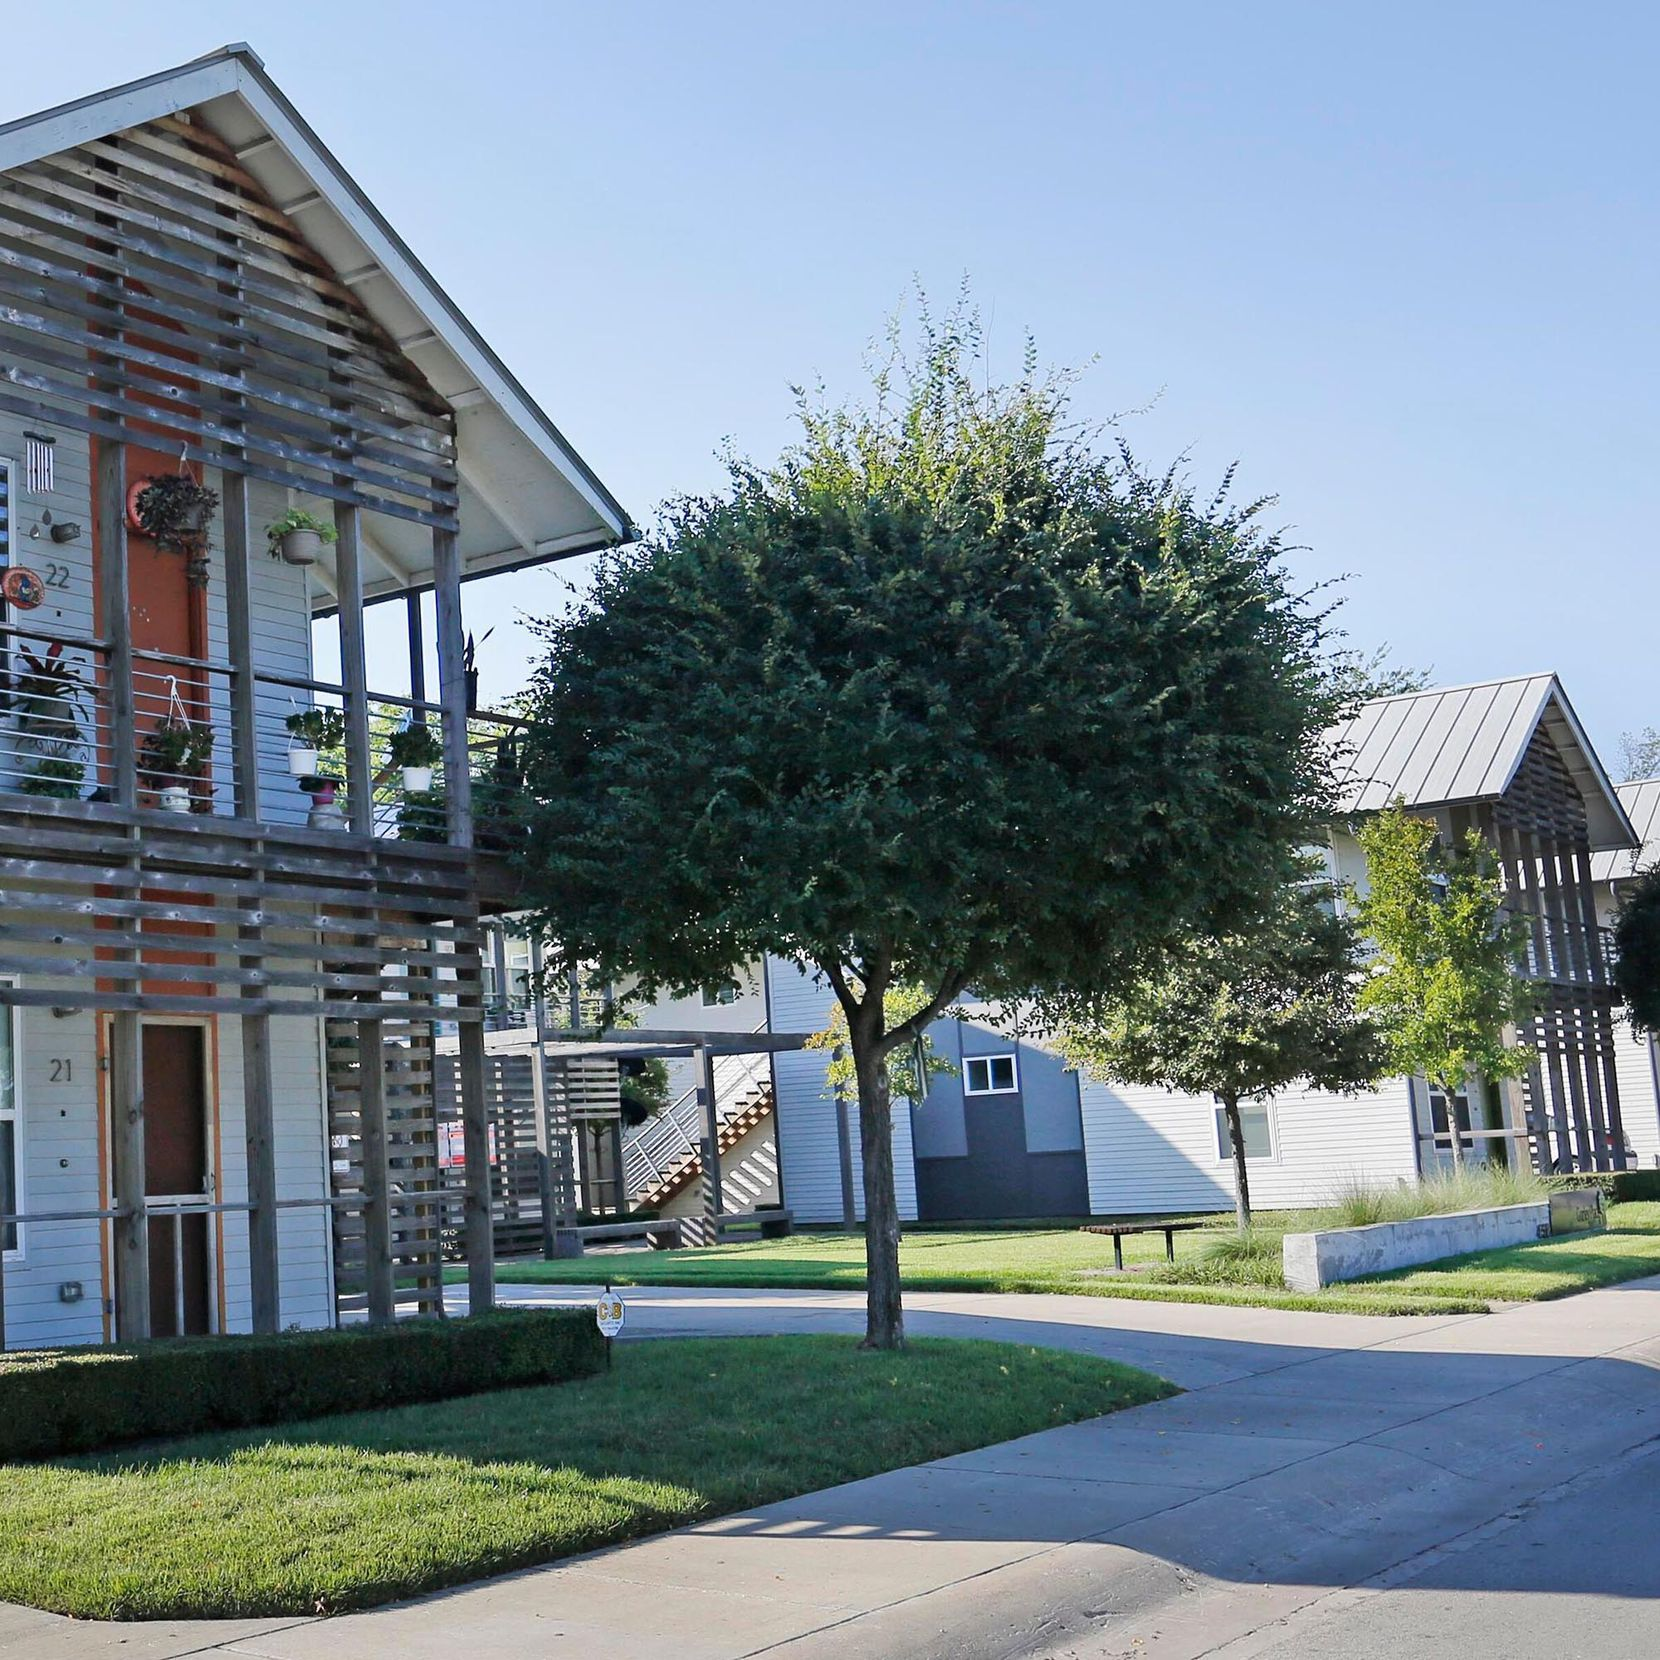 Gurley Place, an affordable senior housing project by the nonprofit BC Workshop, is a model of equitable and sustainable design practice.